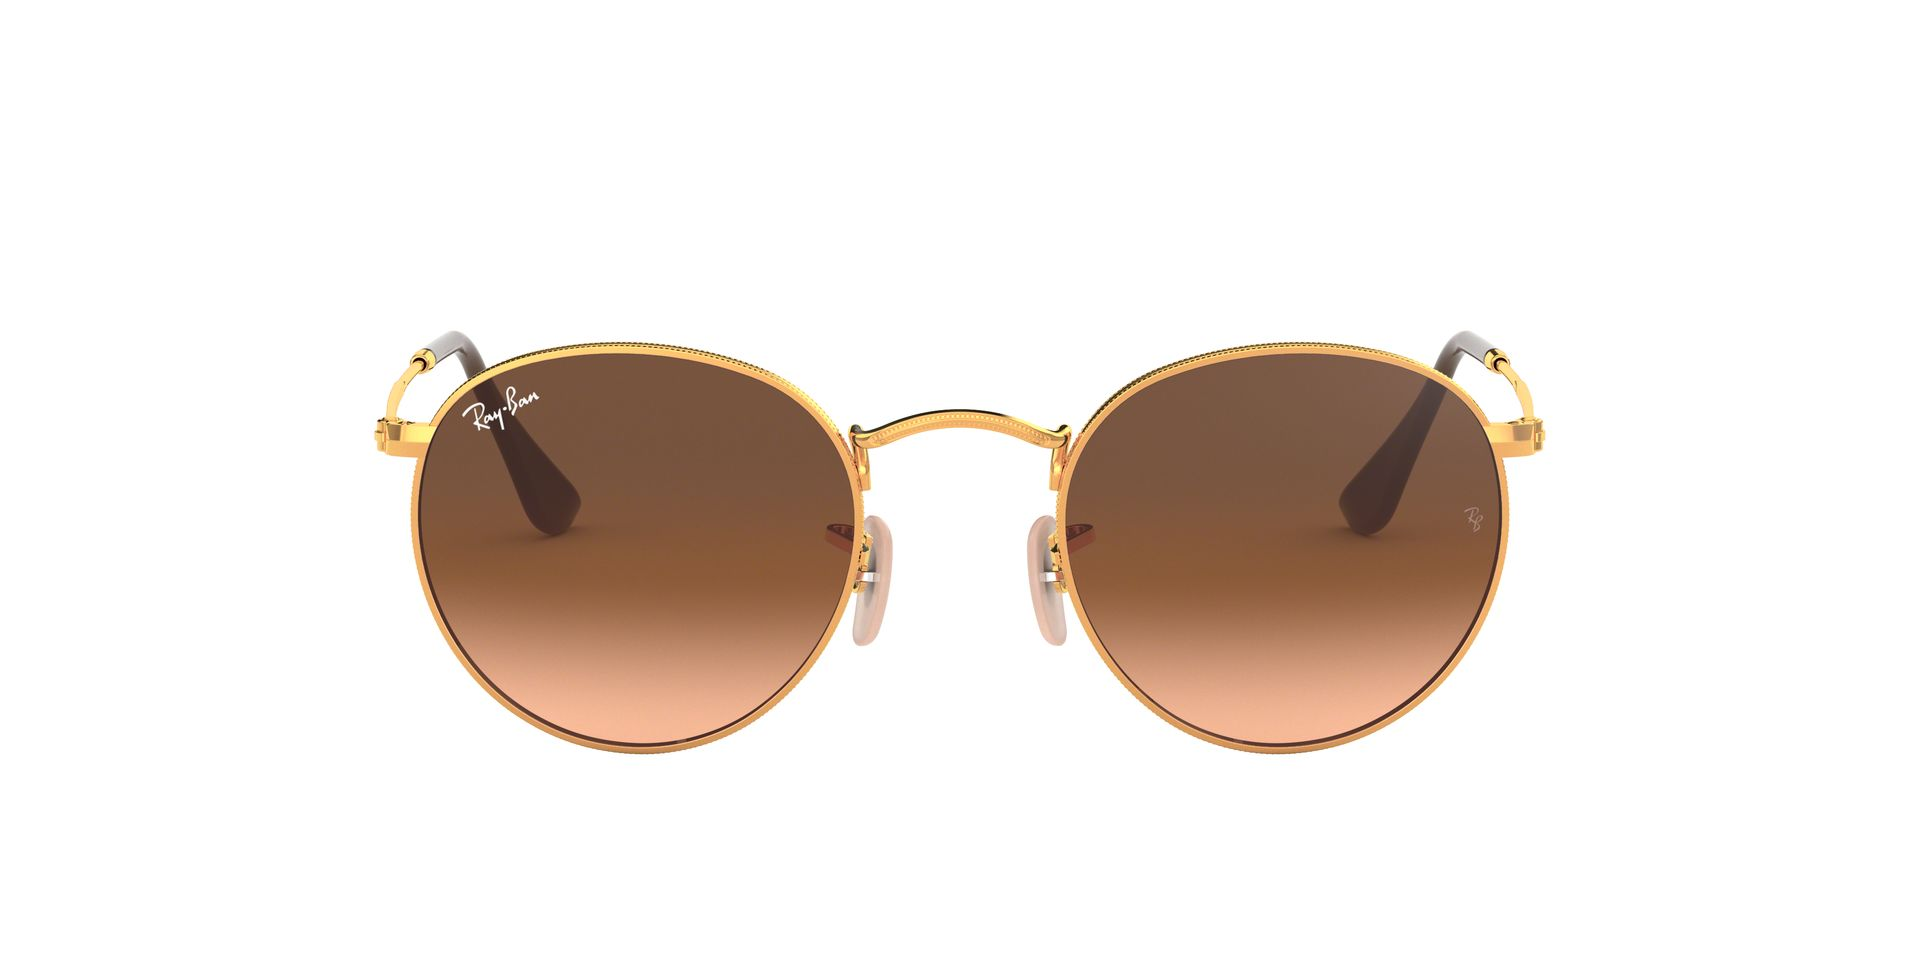 RAY-BAN ROUND METAL RB 3447 9001A5-360